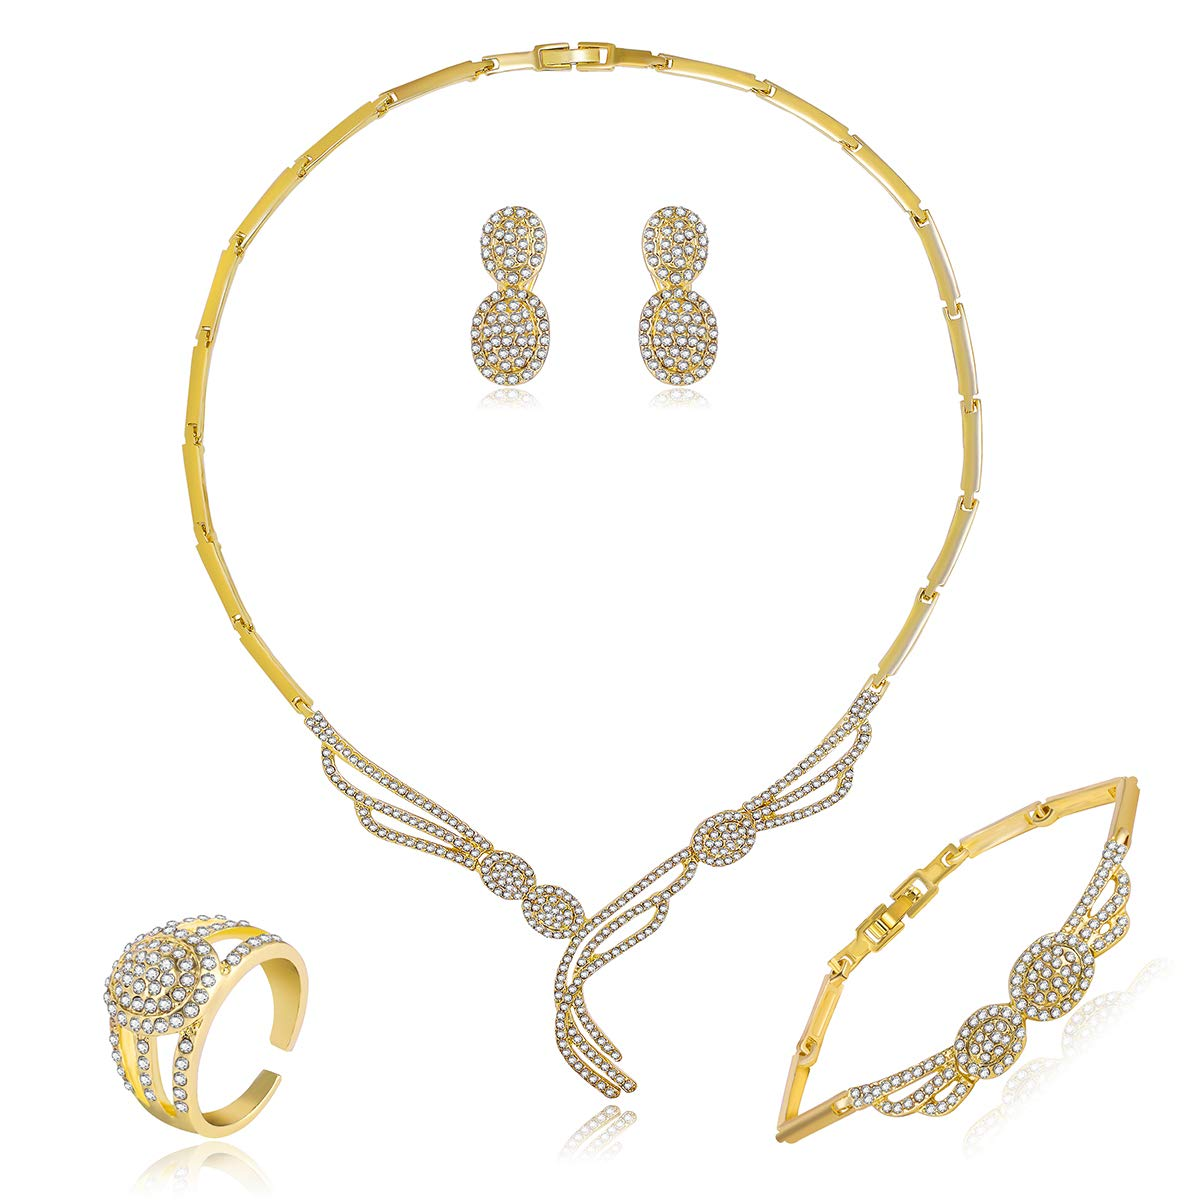 Gold Plated Necklaces Modern Style Crystal Jewelry Set Amazon Co